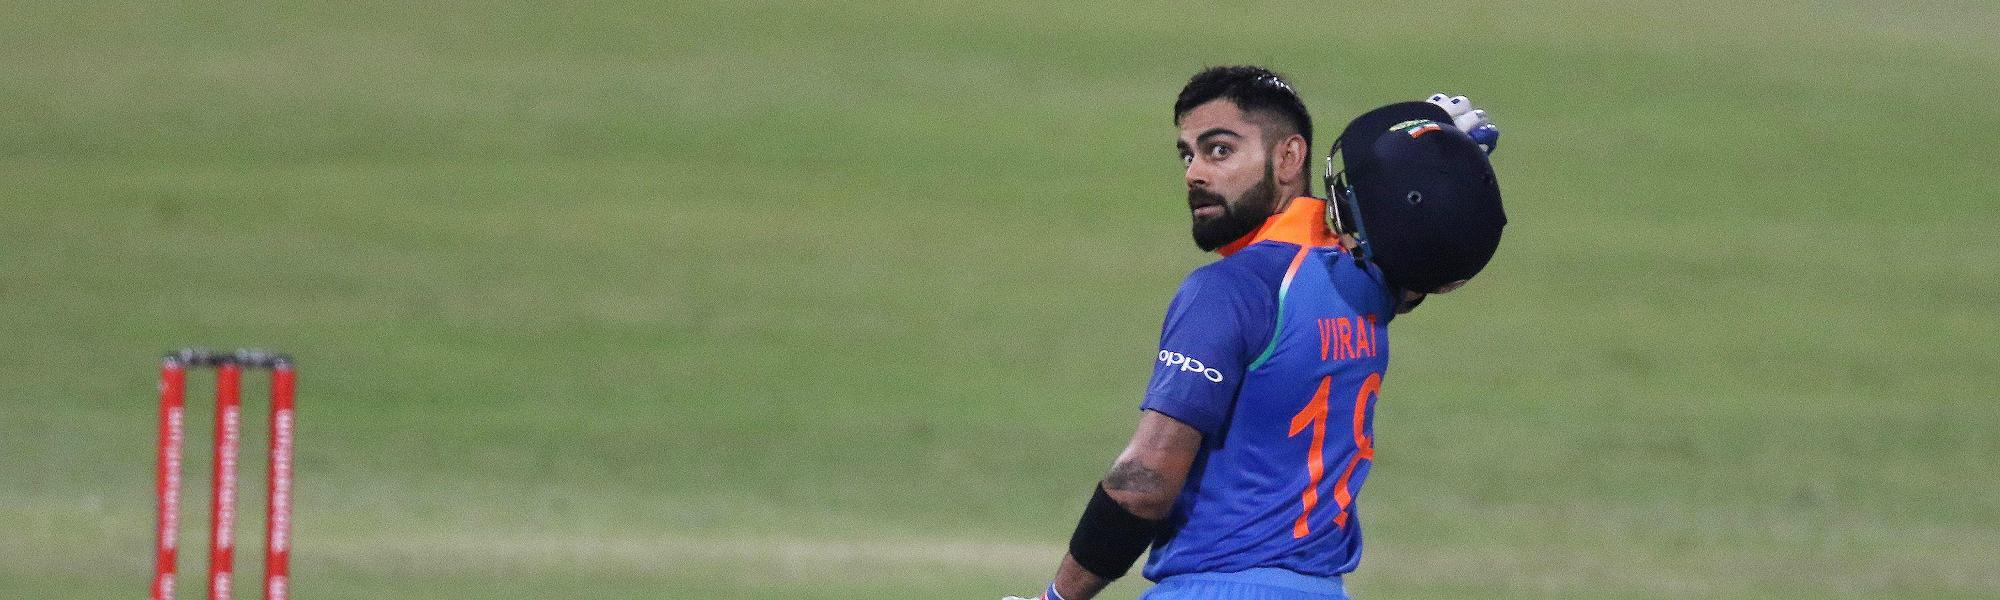 'GOAT!' – The world reacts as Virat Kohli reaches 10,000 ODI runs